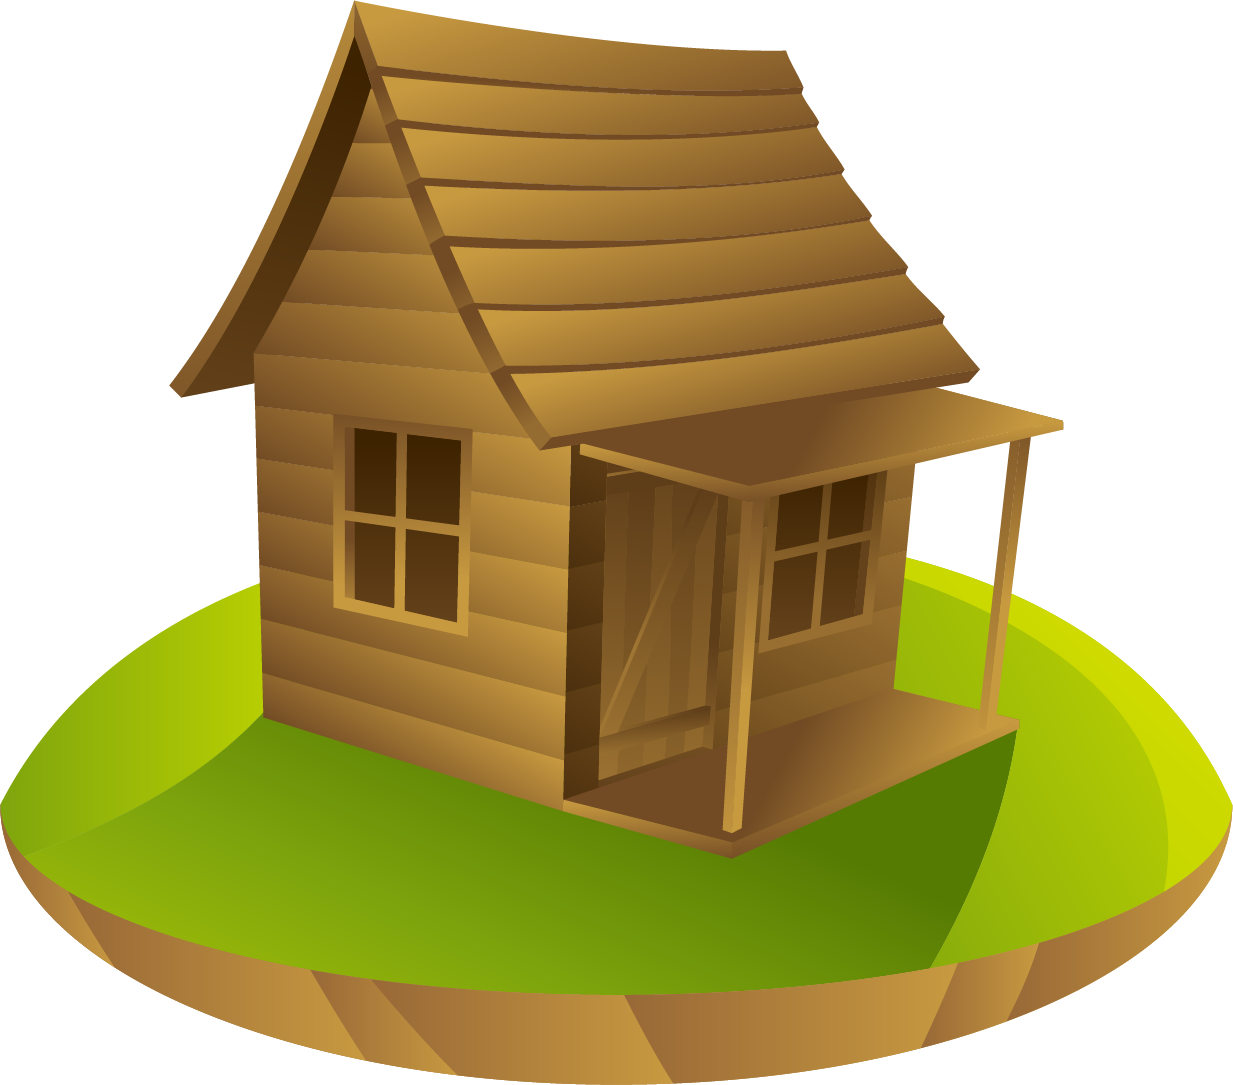 Cabin drawing a in. Cottage vector log house svg freeuse library